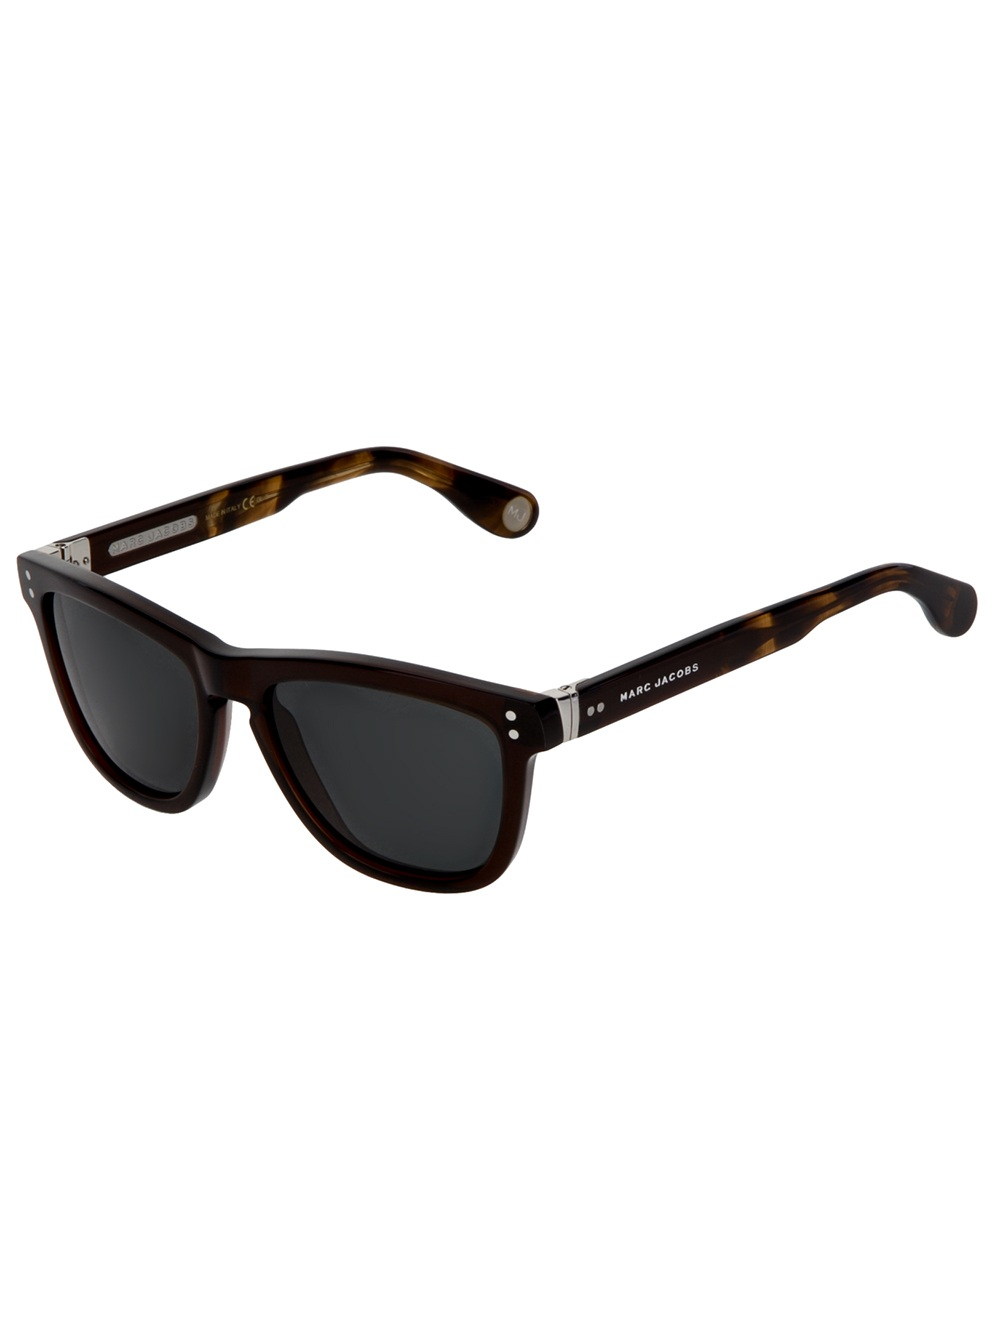 Marc Jacobs Sunglasses Men  marc jacobs wayfarer sunglasses in black for men lyst